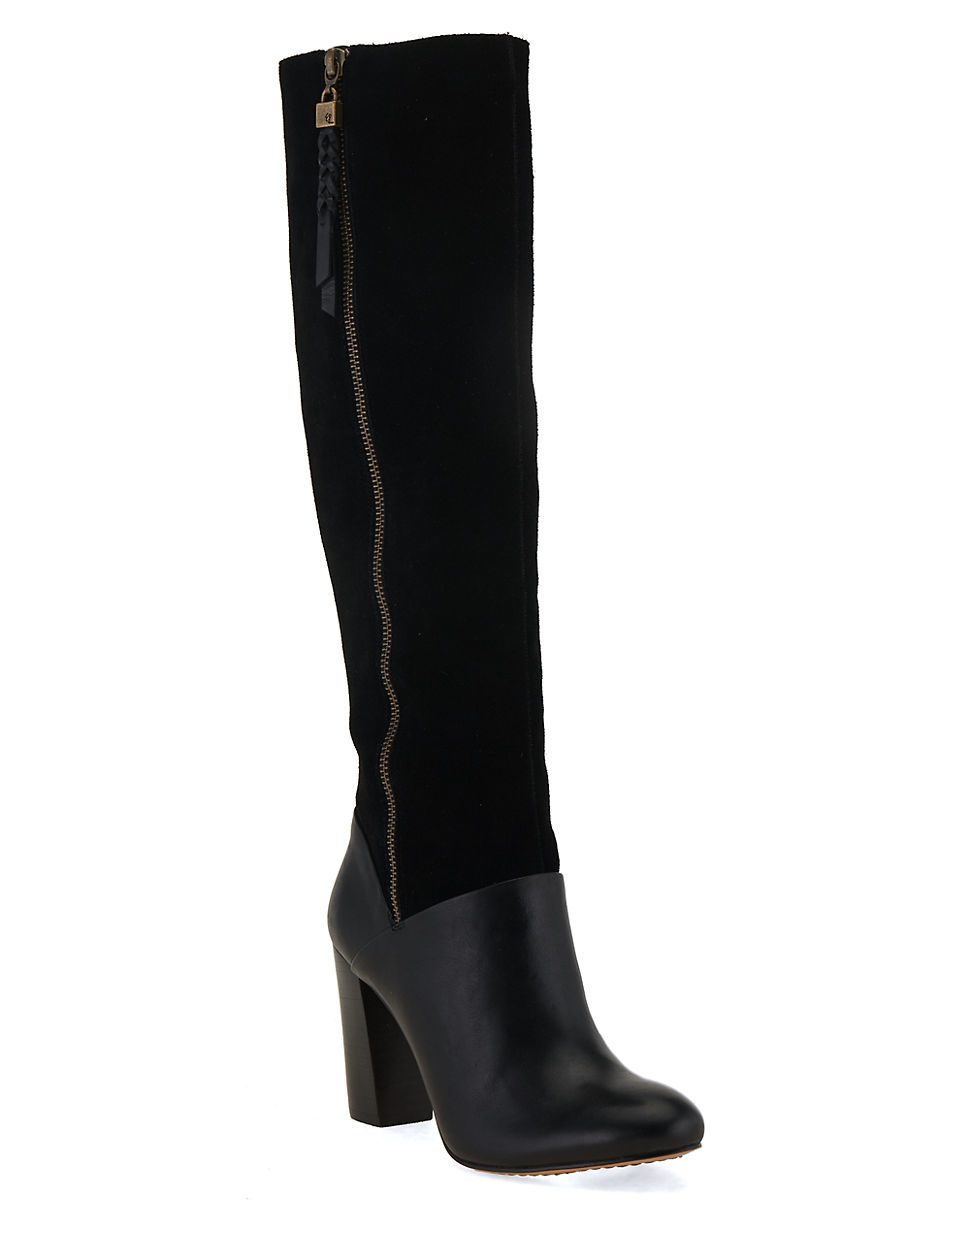 elliott lucca dorea leather boots in black lyst